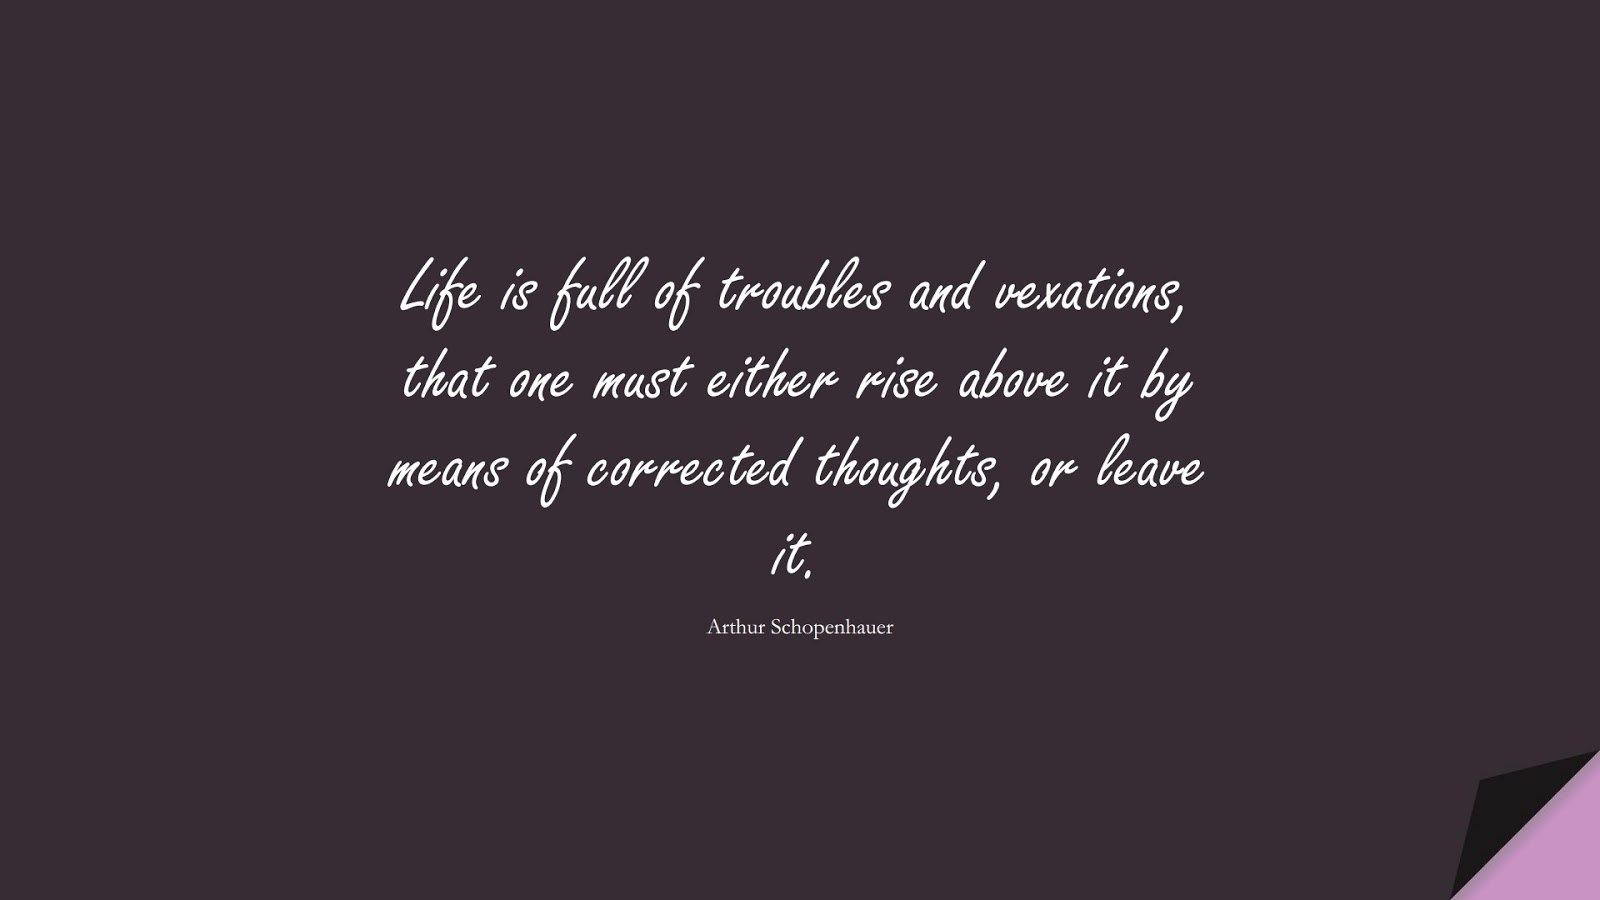 Life is full of troubles and vexations, that one must either rise above it by means of corrected thoughts, or leave it. (Arthur Schopenhauer);  #NeverGiveUpQuotes